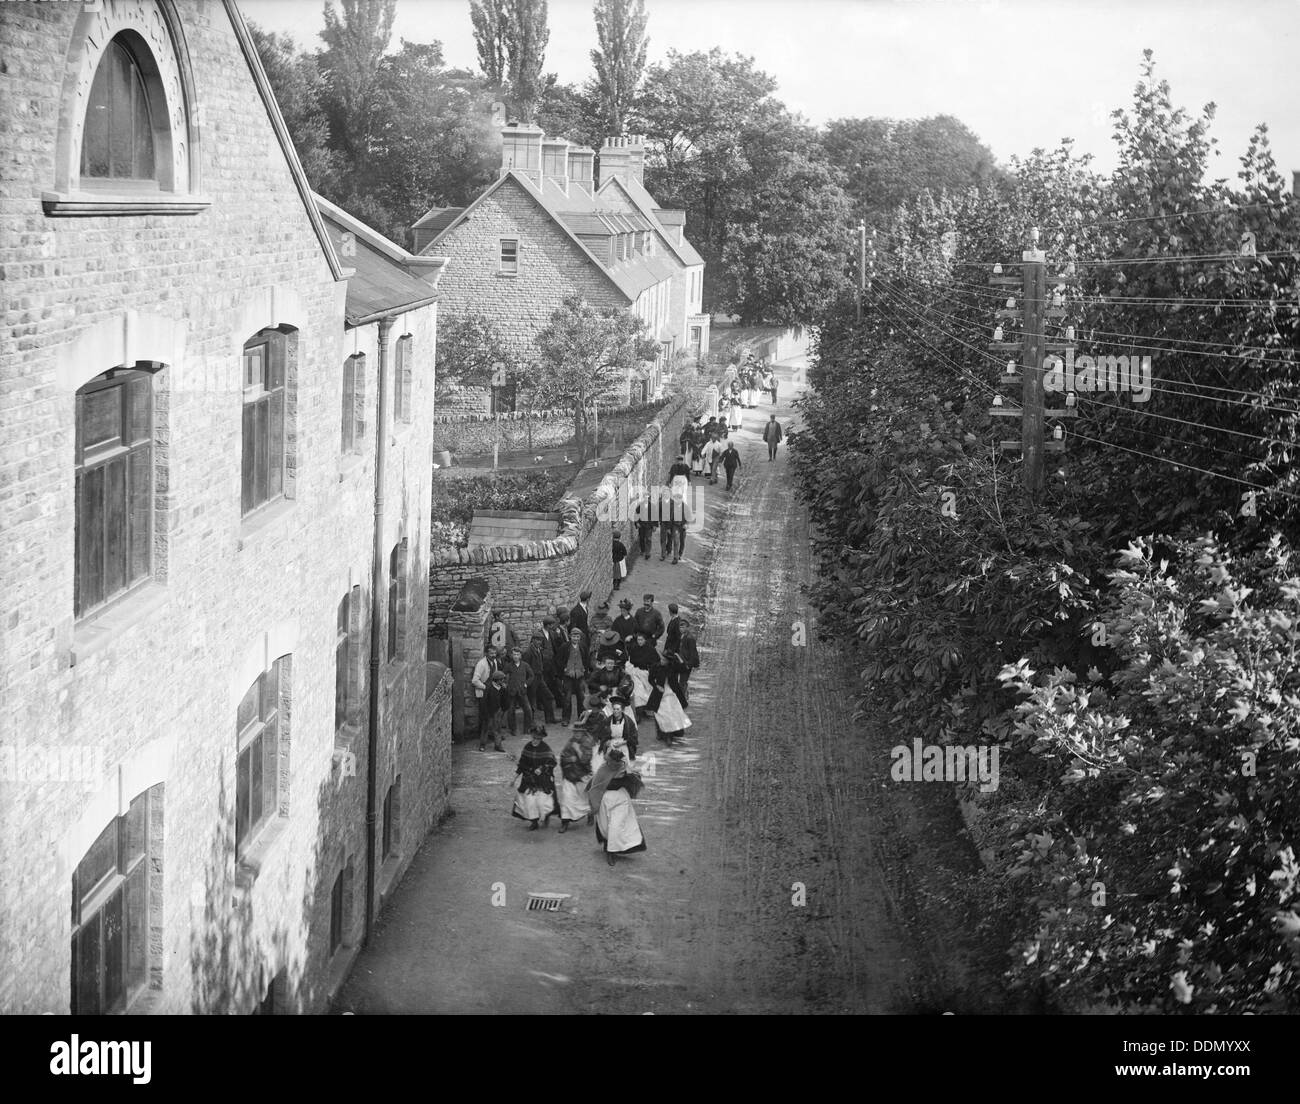 Workers at the Early Blanket Factory, Witney, Oxfordshire, c1860-c1922. Artist: Henry Taunt - Stock Image